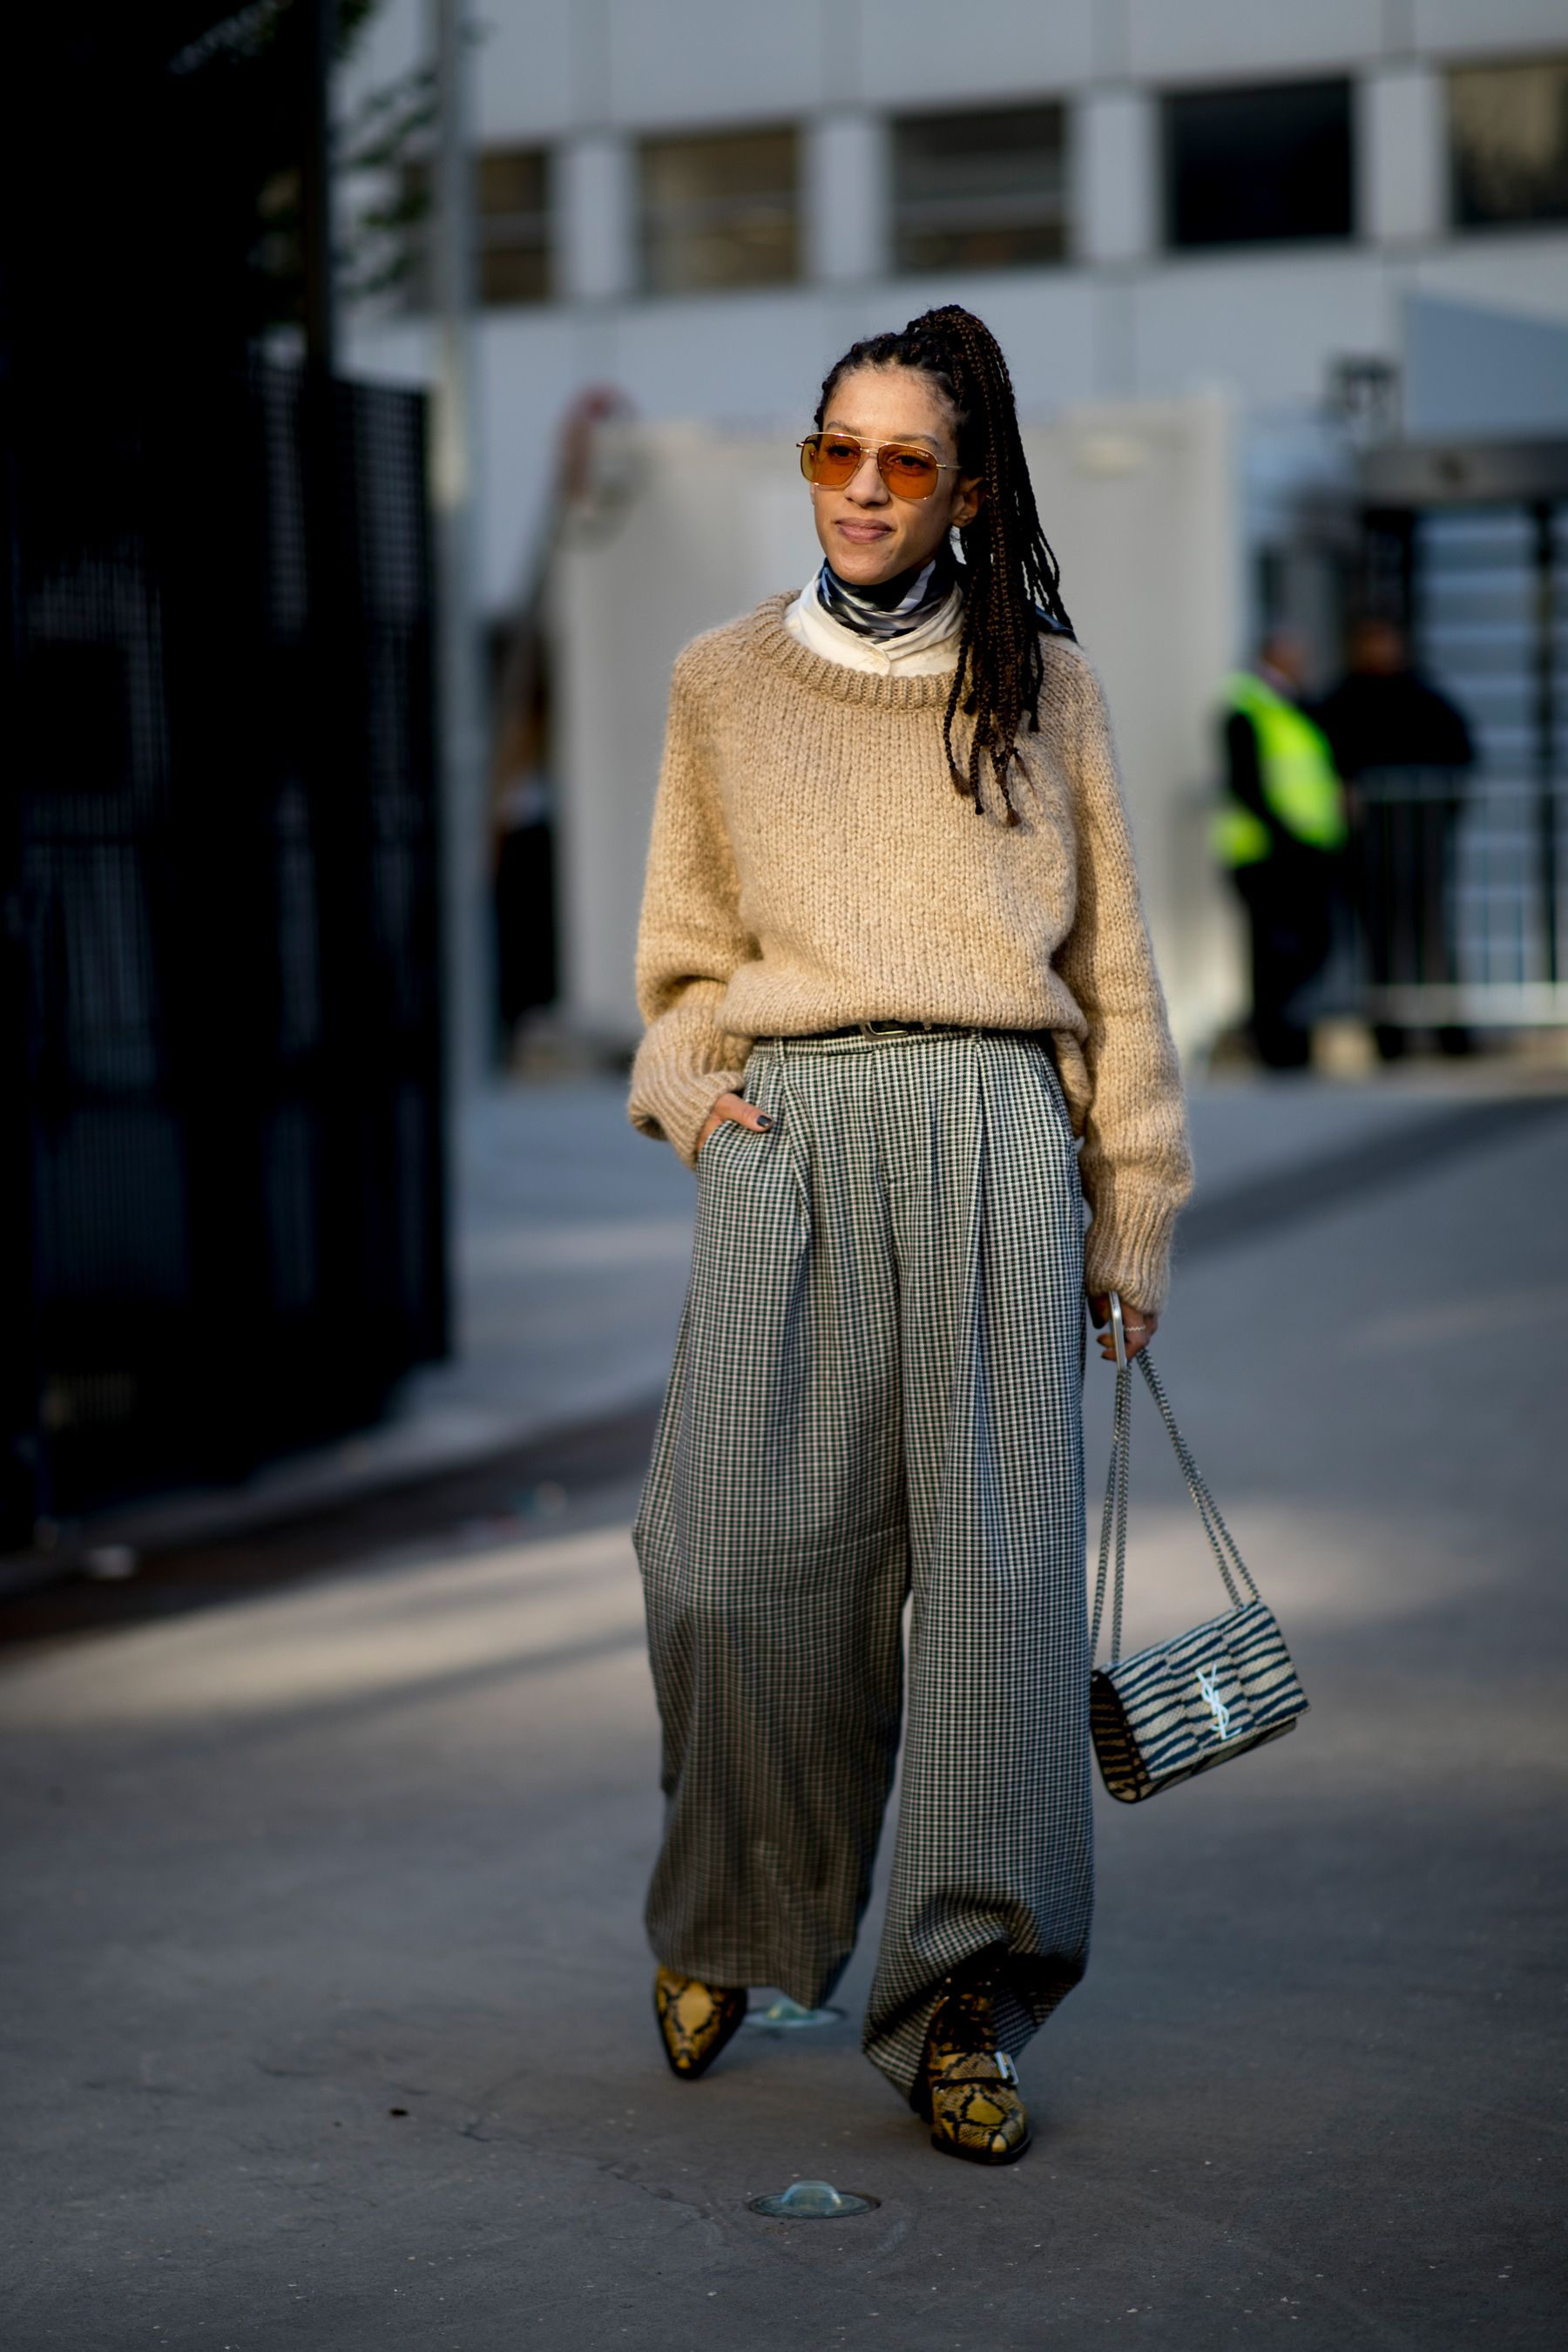 This Colour Dominated Street Style in 2019 forecast